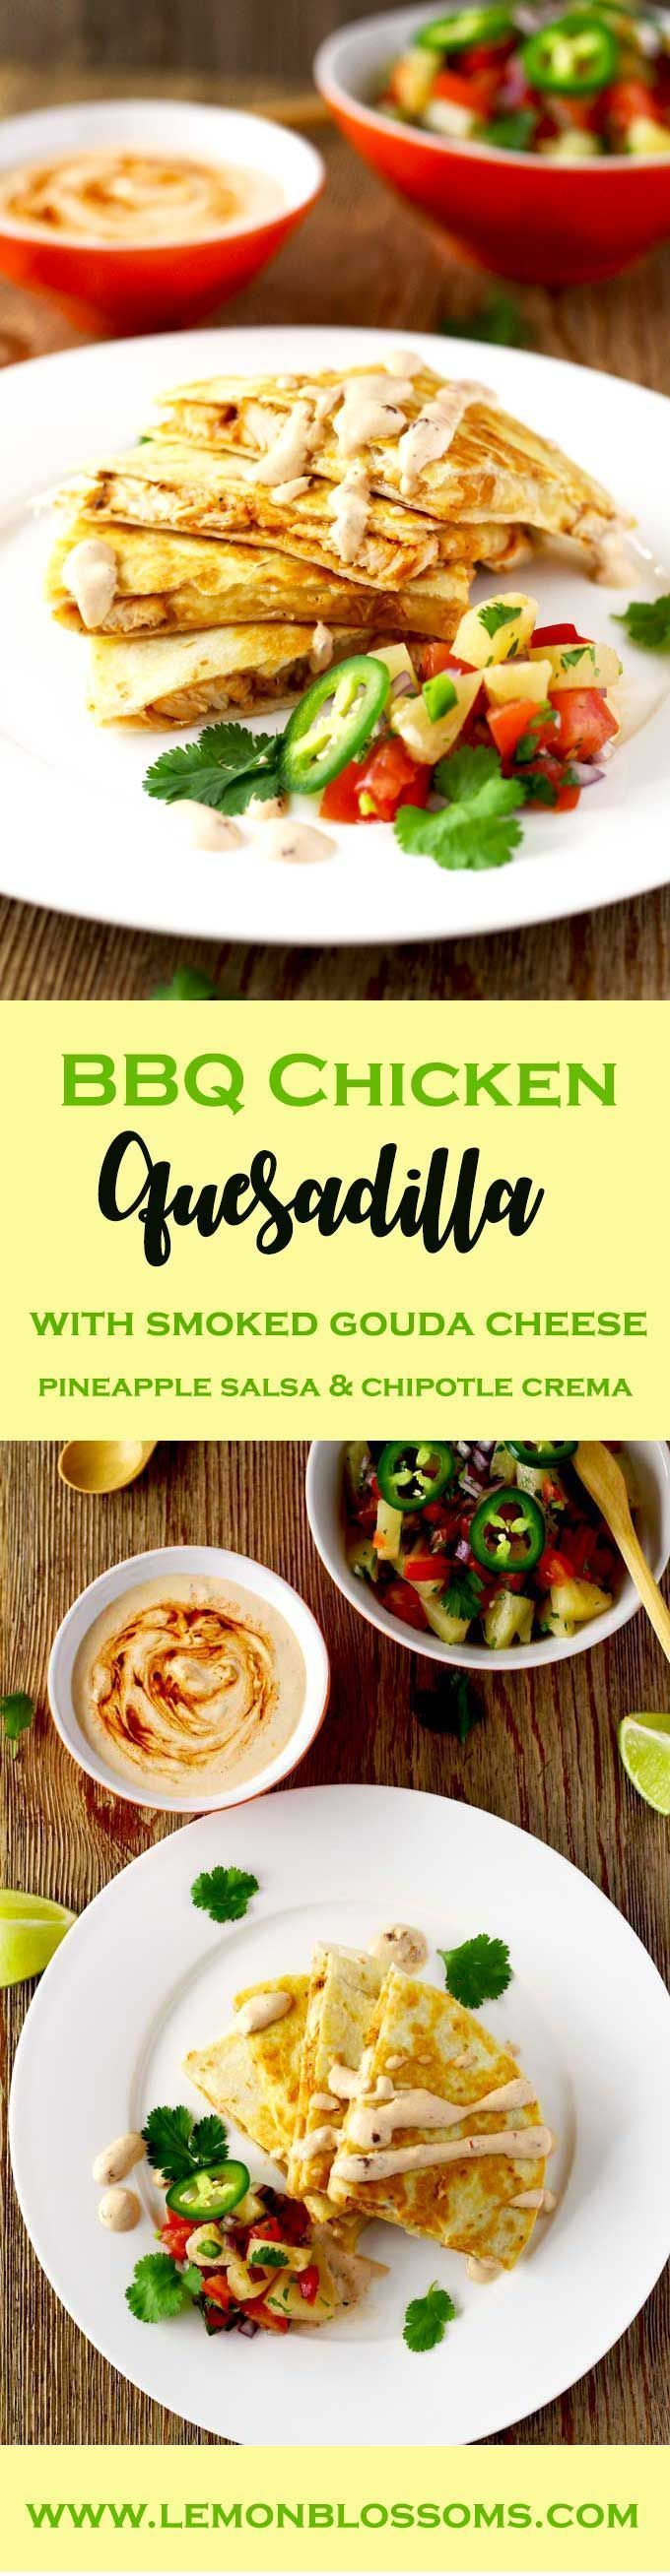 This easy to make Tex Mex inspired BBQ Chicken Quesadilla with Smoked Gouda Cheese is packed with super flavorful chicken and gooey cheese. Served with a delicious and fruity pineapple salsa and topped with a spicy and smoky Chipotle Crema! Let's sum that